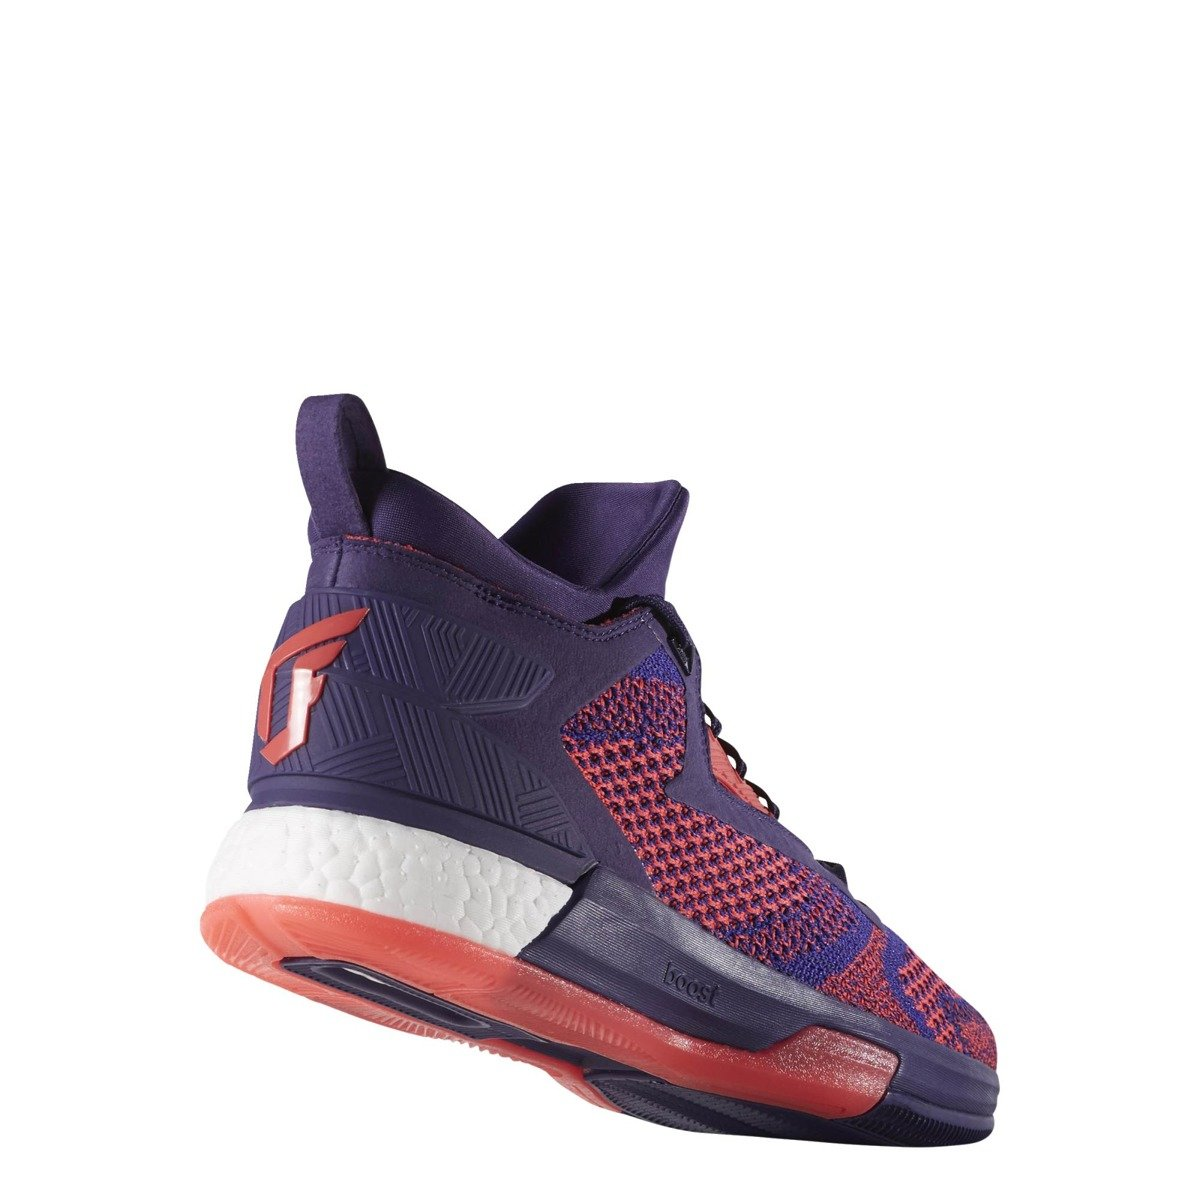 adidas boost shoes buy